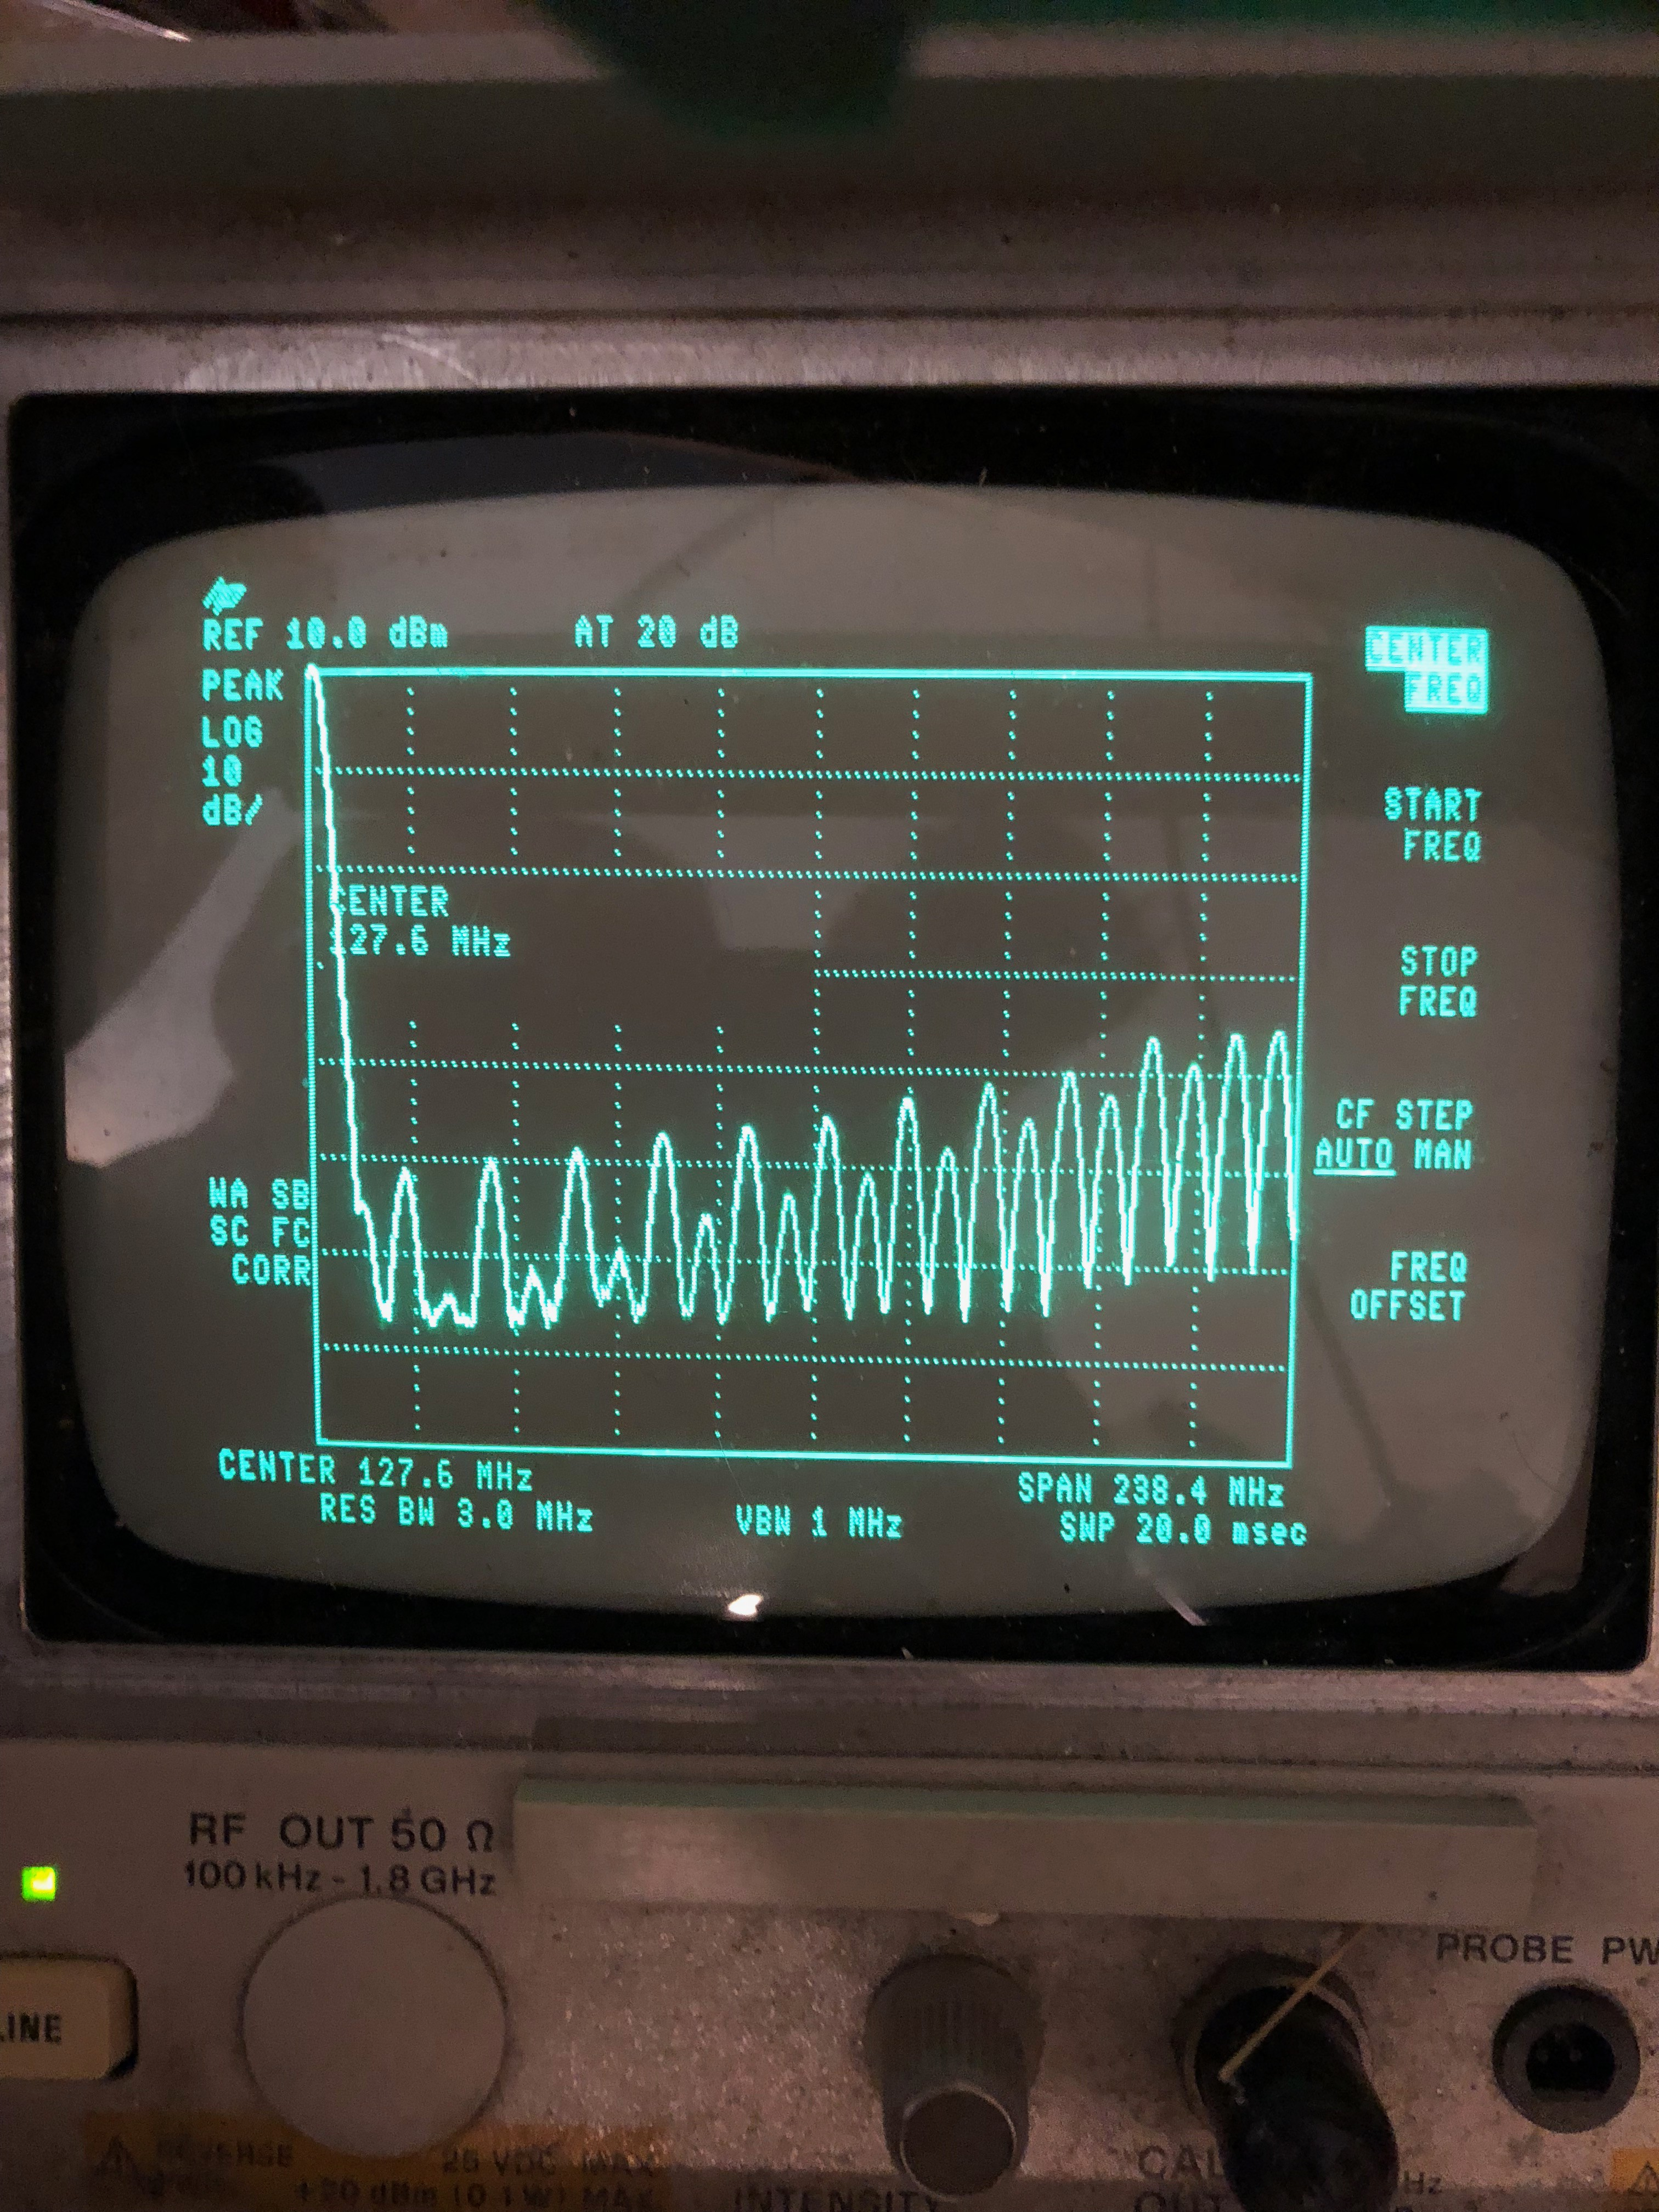 Gps Disciplined Xcxo Above Schematic This 100 Mhz Crystal Oscillator Has A 10 Db 50 Now That Second Harmonic Is Knocked Right Down Under Im Not Sure Whats Up With The Higher Harmonics Starting To Drift But I Did Have